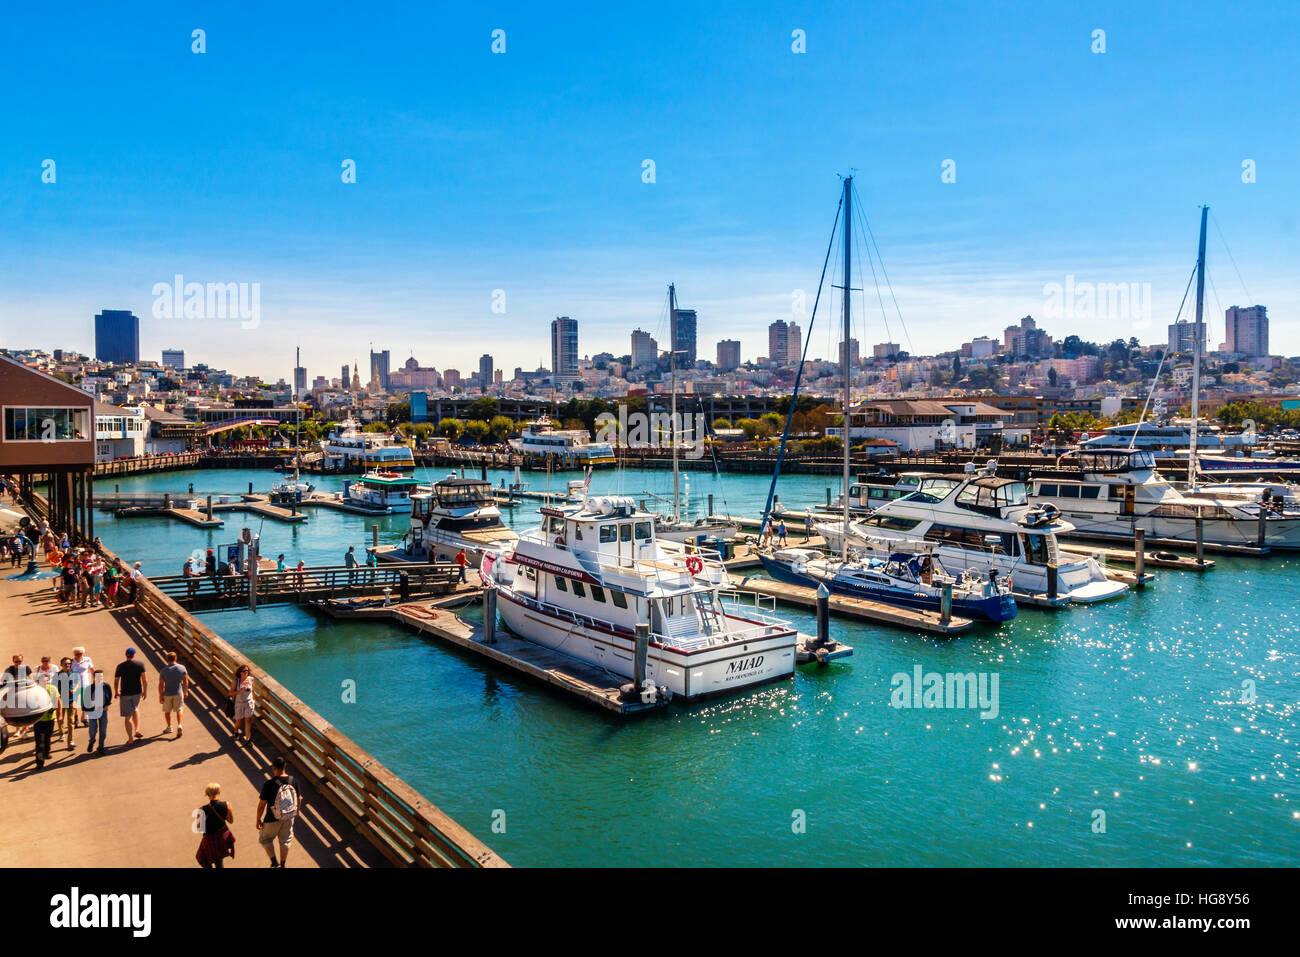 SAN FRANCISCO, CA - SEPTEMBER 20, 2015: Yachts docked at Pier 39 Marina in San Francisco with city skyline in background. - Stock Image